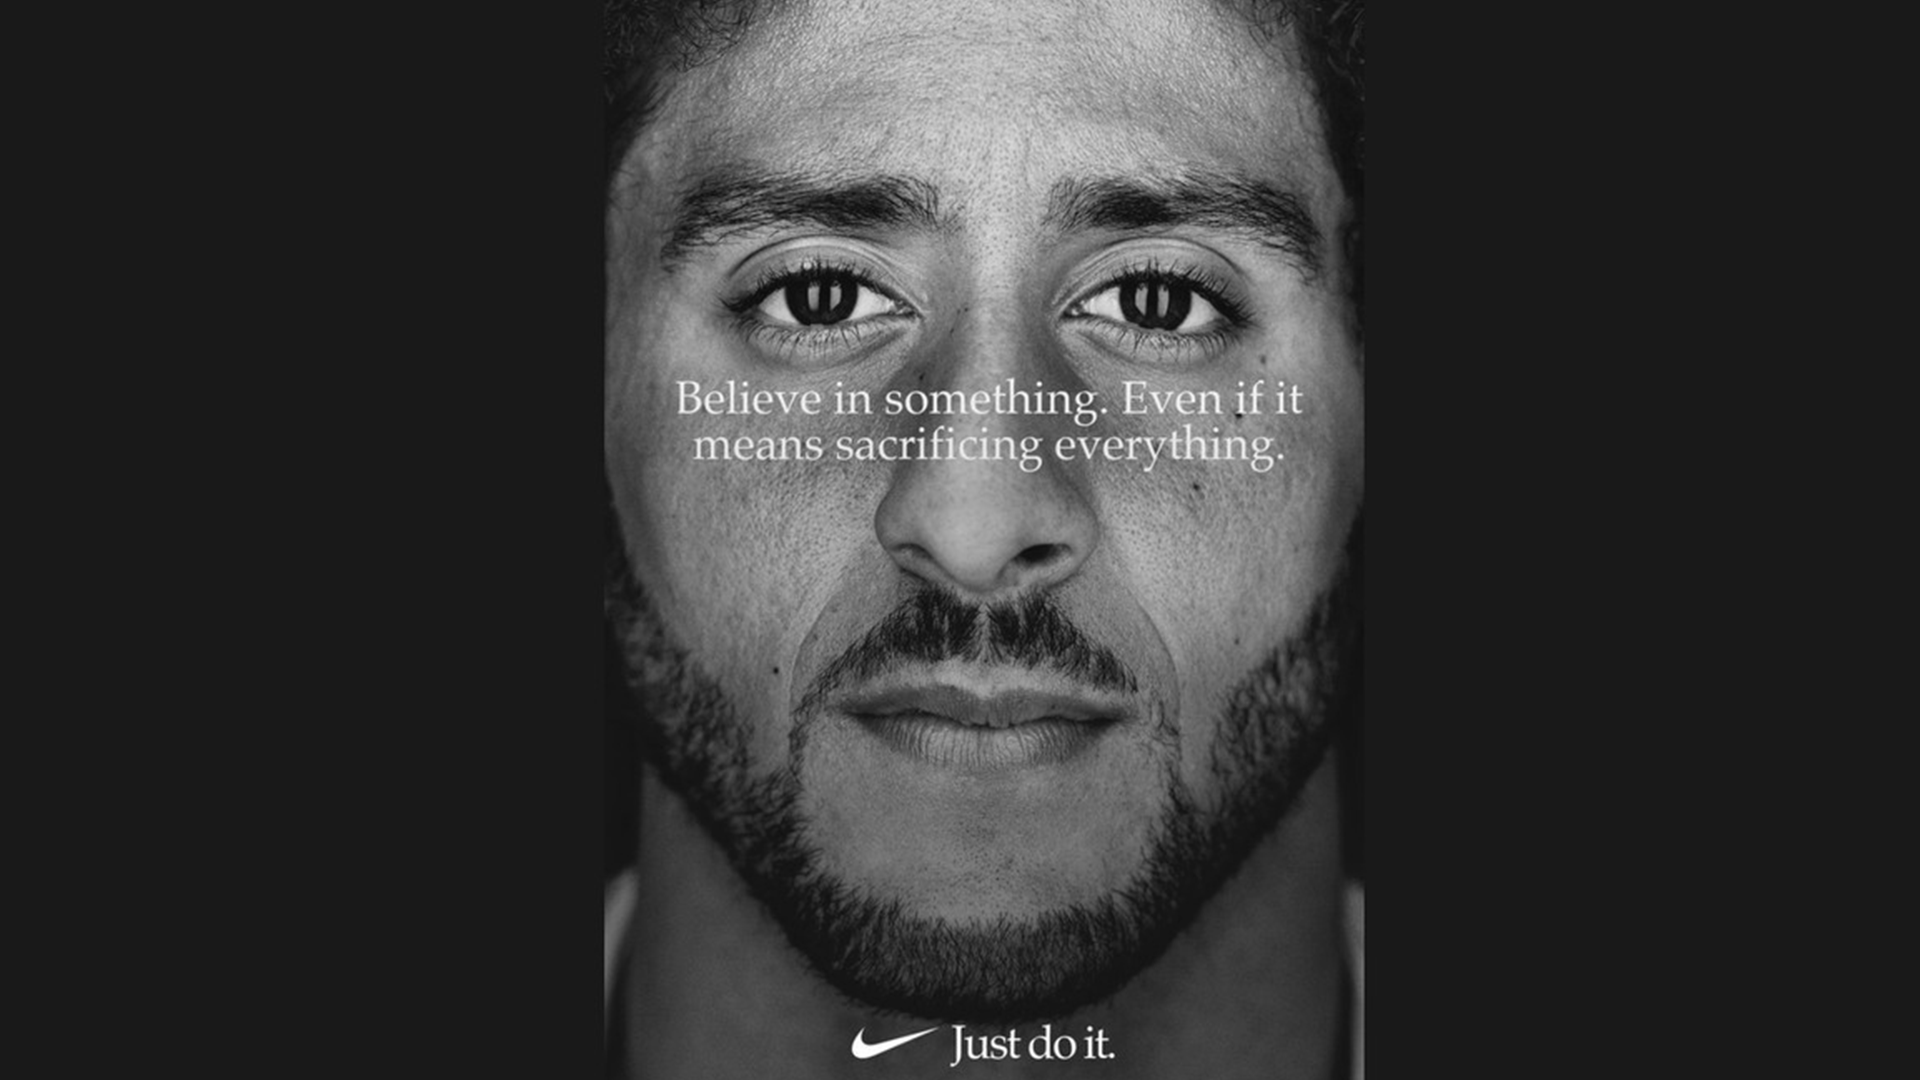 How Nike's marketing has evolved with UK culture and Black Issues